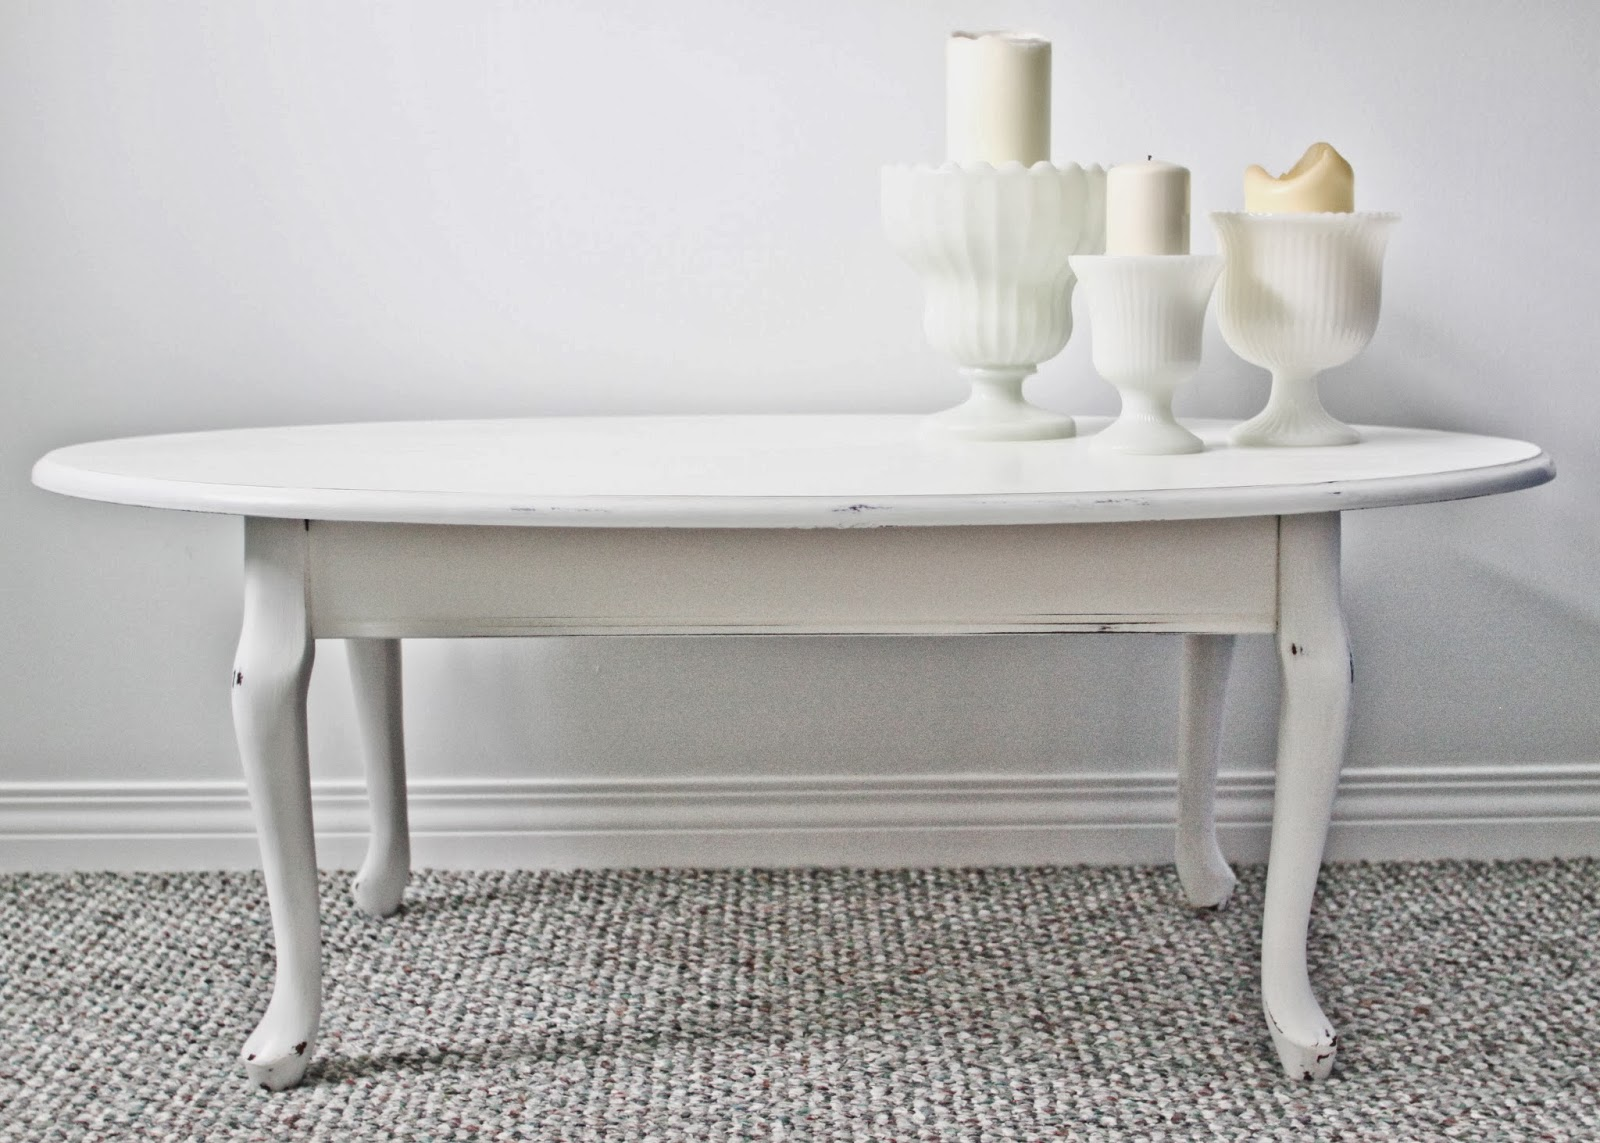 Queen Anne Oval Coffee Table-2.bp.blogspot.com